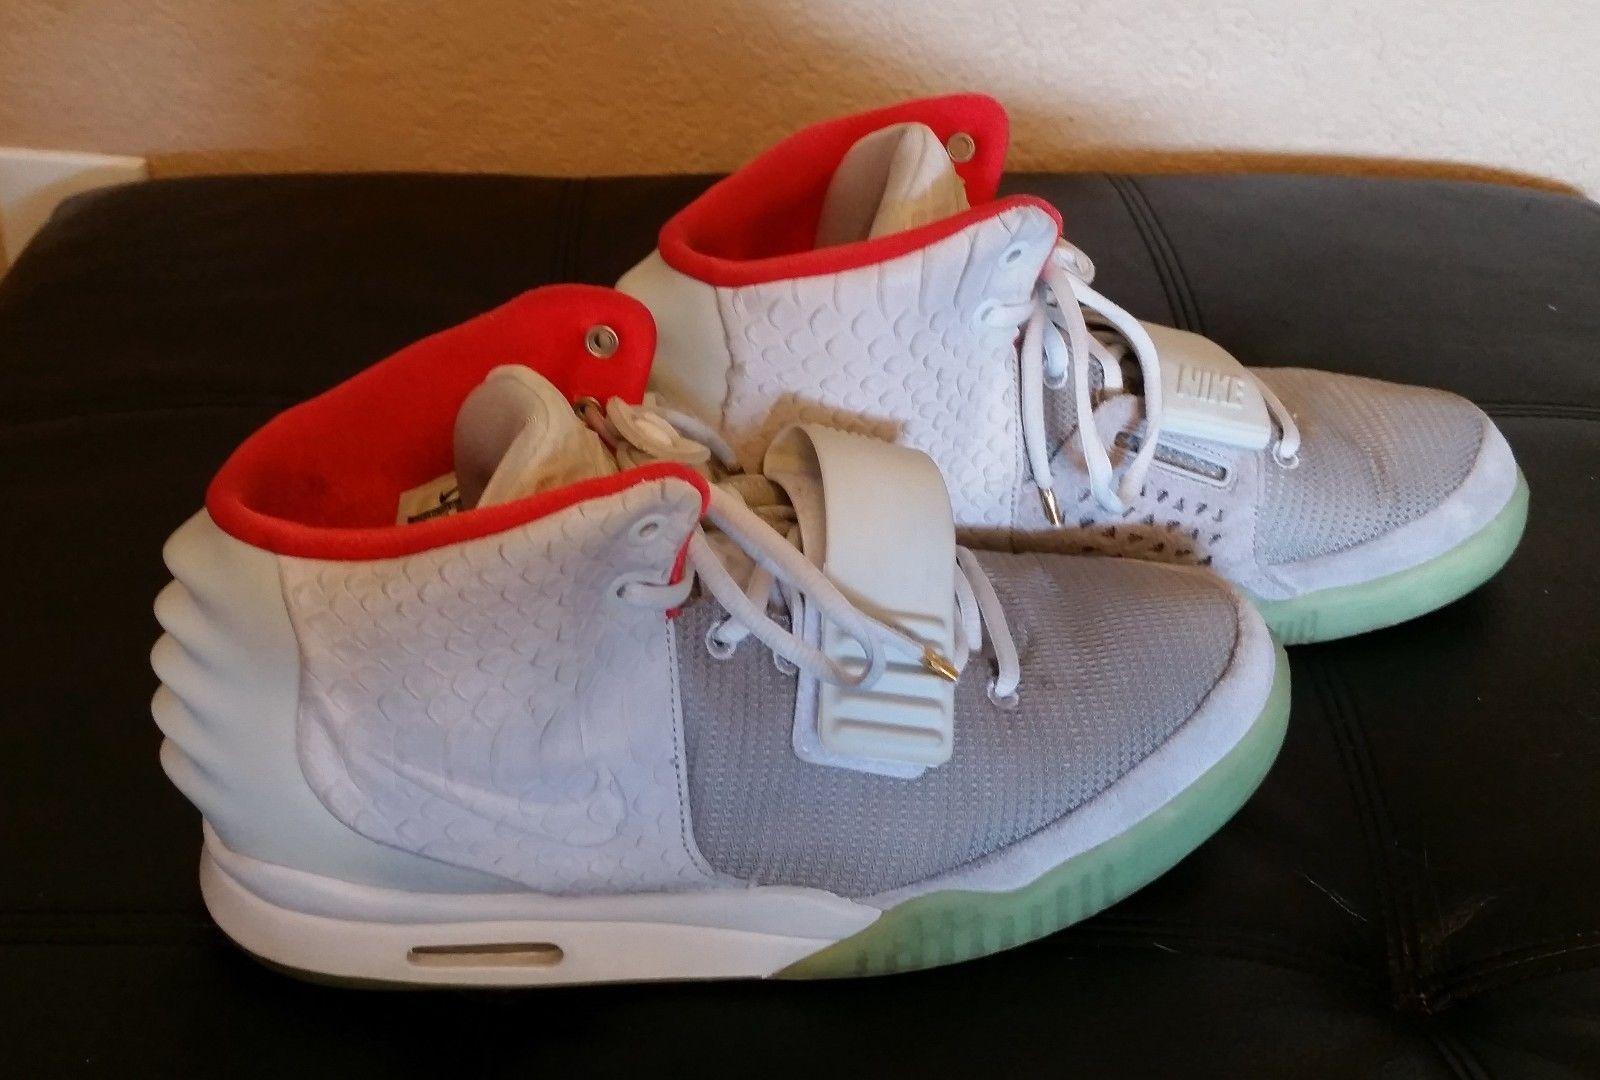 buy popular 91b3f a76aa ... promo code for nike air yeezy 2 shoes kaney west platinum nrg used size  12 ebay